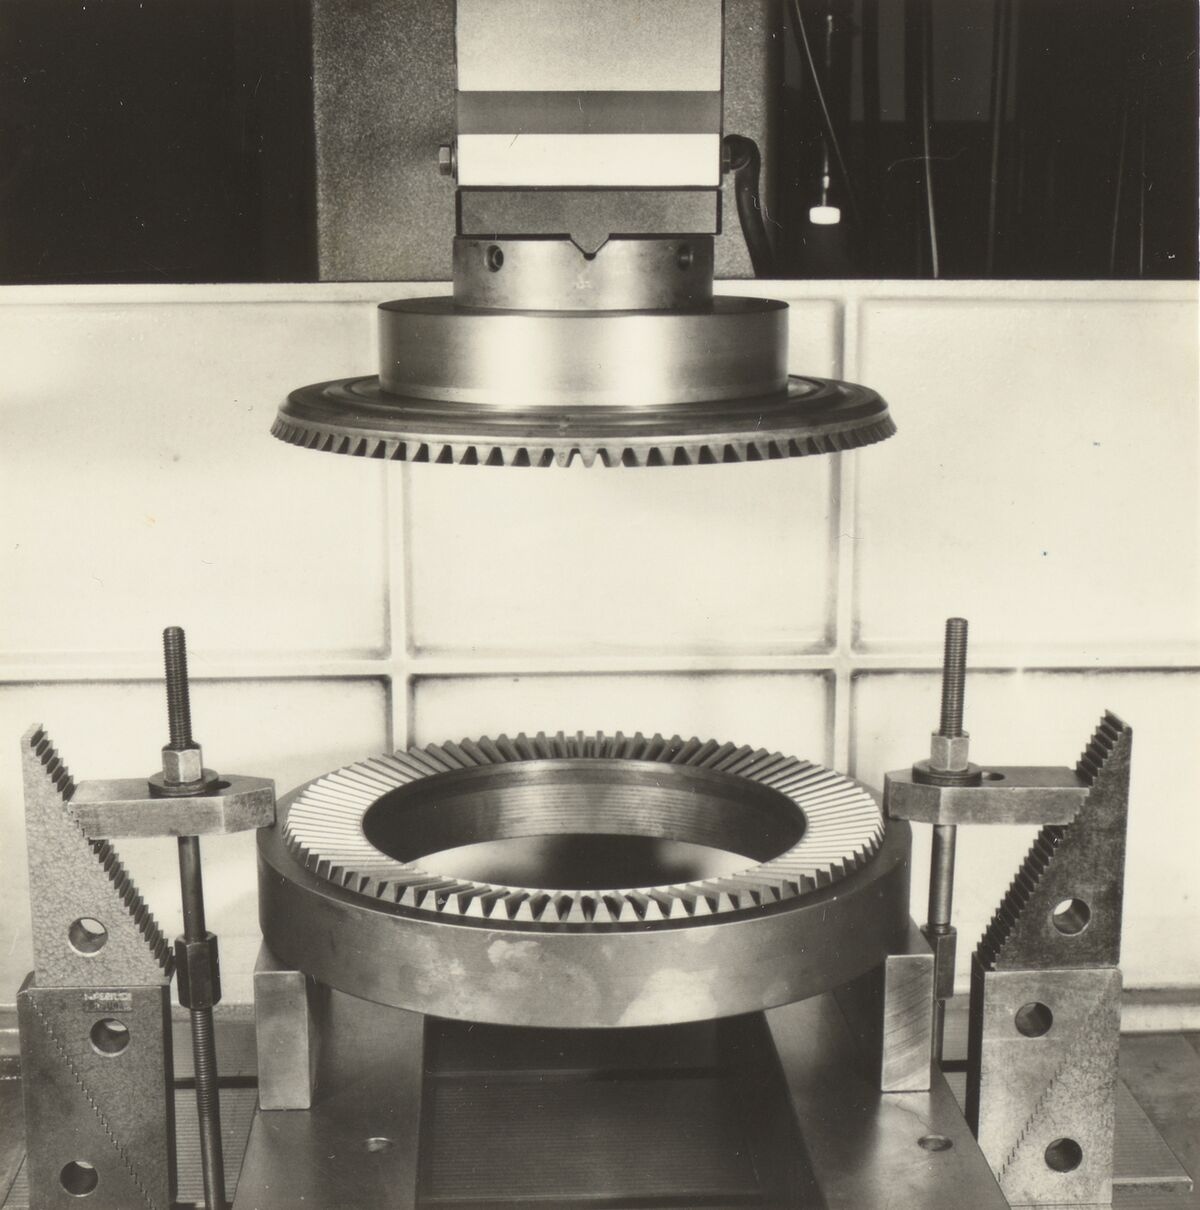 GFA 42/40336: Forging die for the rim of the plate